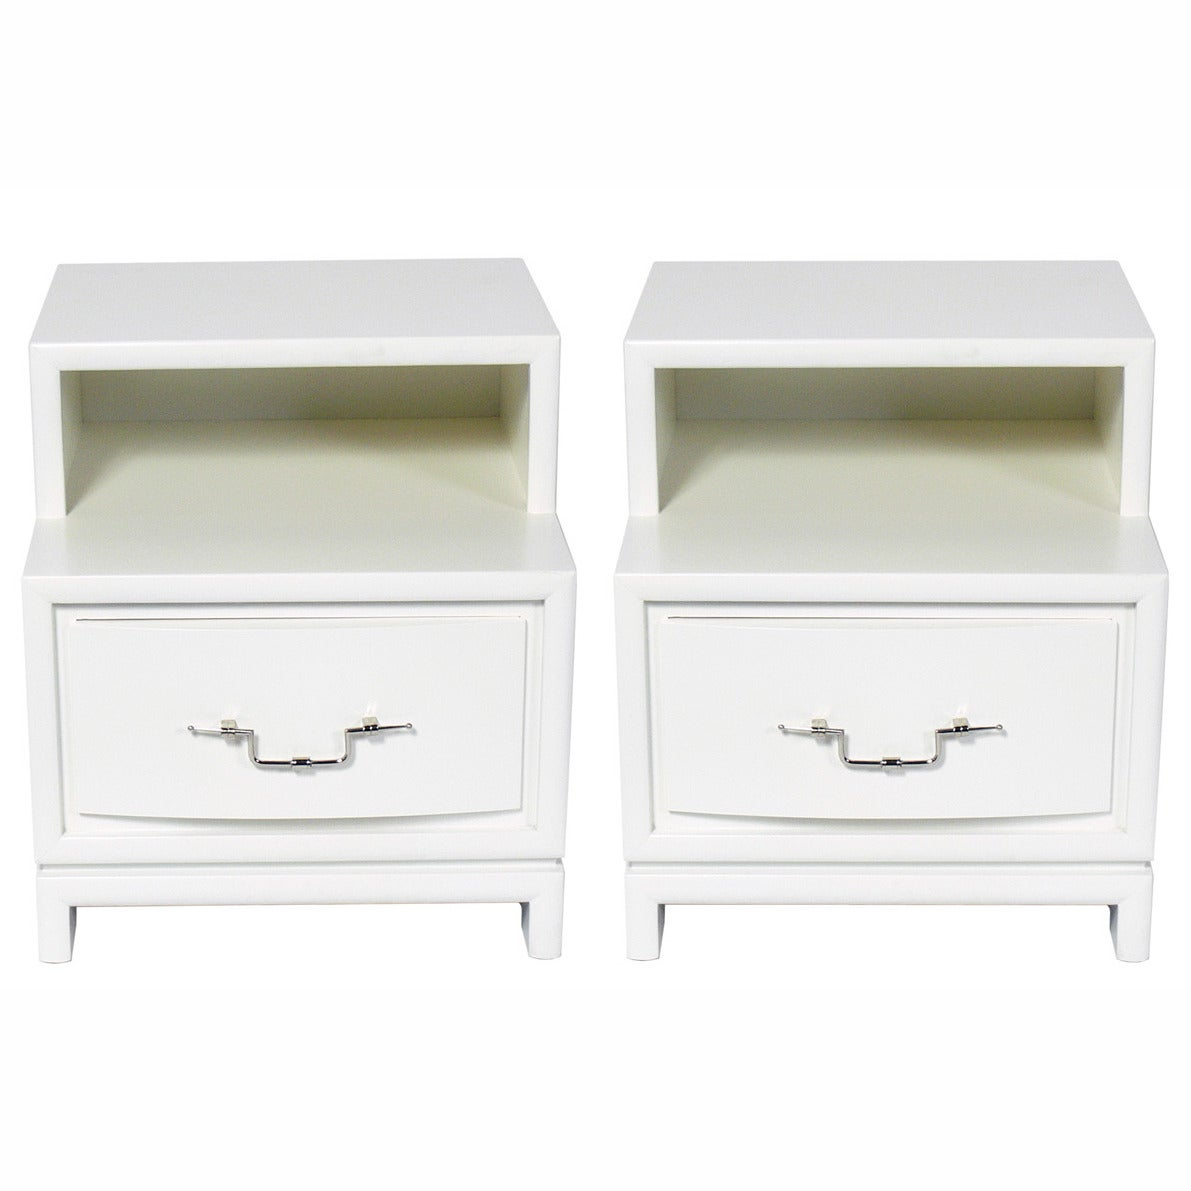 Pair of Night Stands or End Tables Attributed to Tommi Parzinger